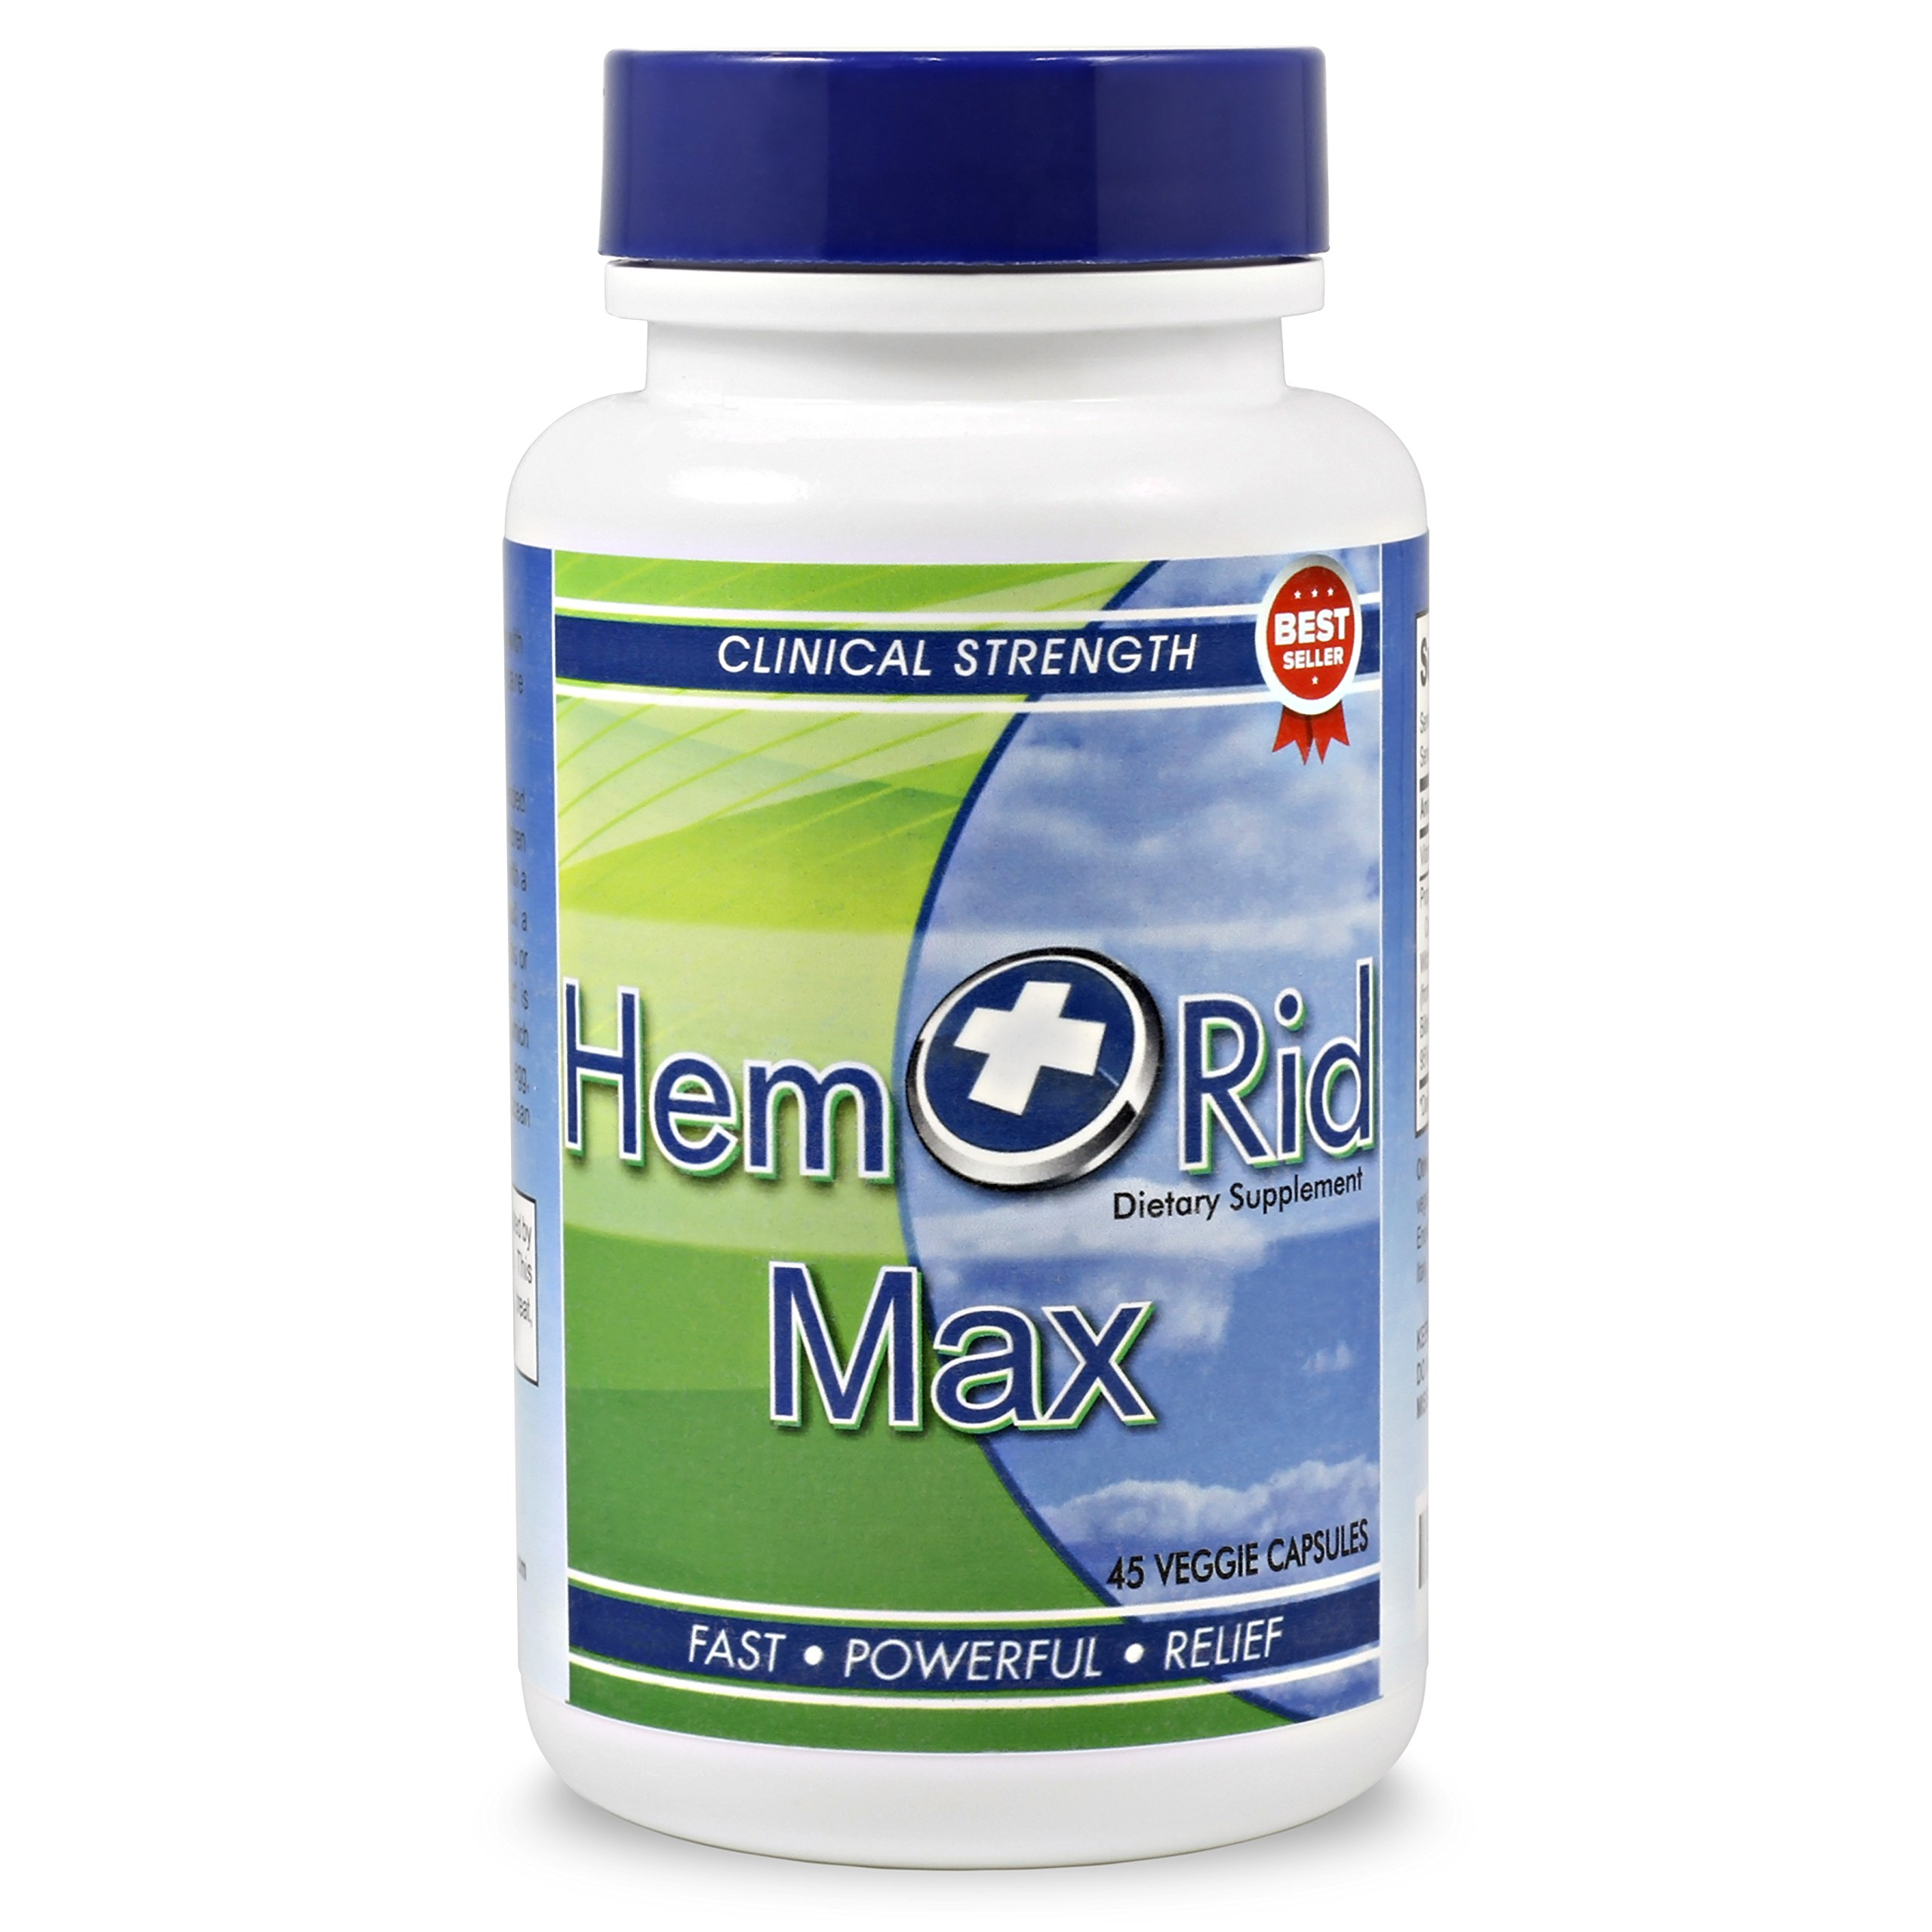 HemRid Max - Fast Hemorrhoid Relief. Perfect to Use with These Types of Hemorrhoid Treatment: Hemorrhoid Wipes, Hemorrhoid Cream, Hemorrhoid Ointment, Hemorrhoid Suppositories and Hemorrhoid Cushion